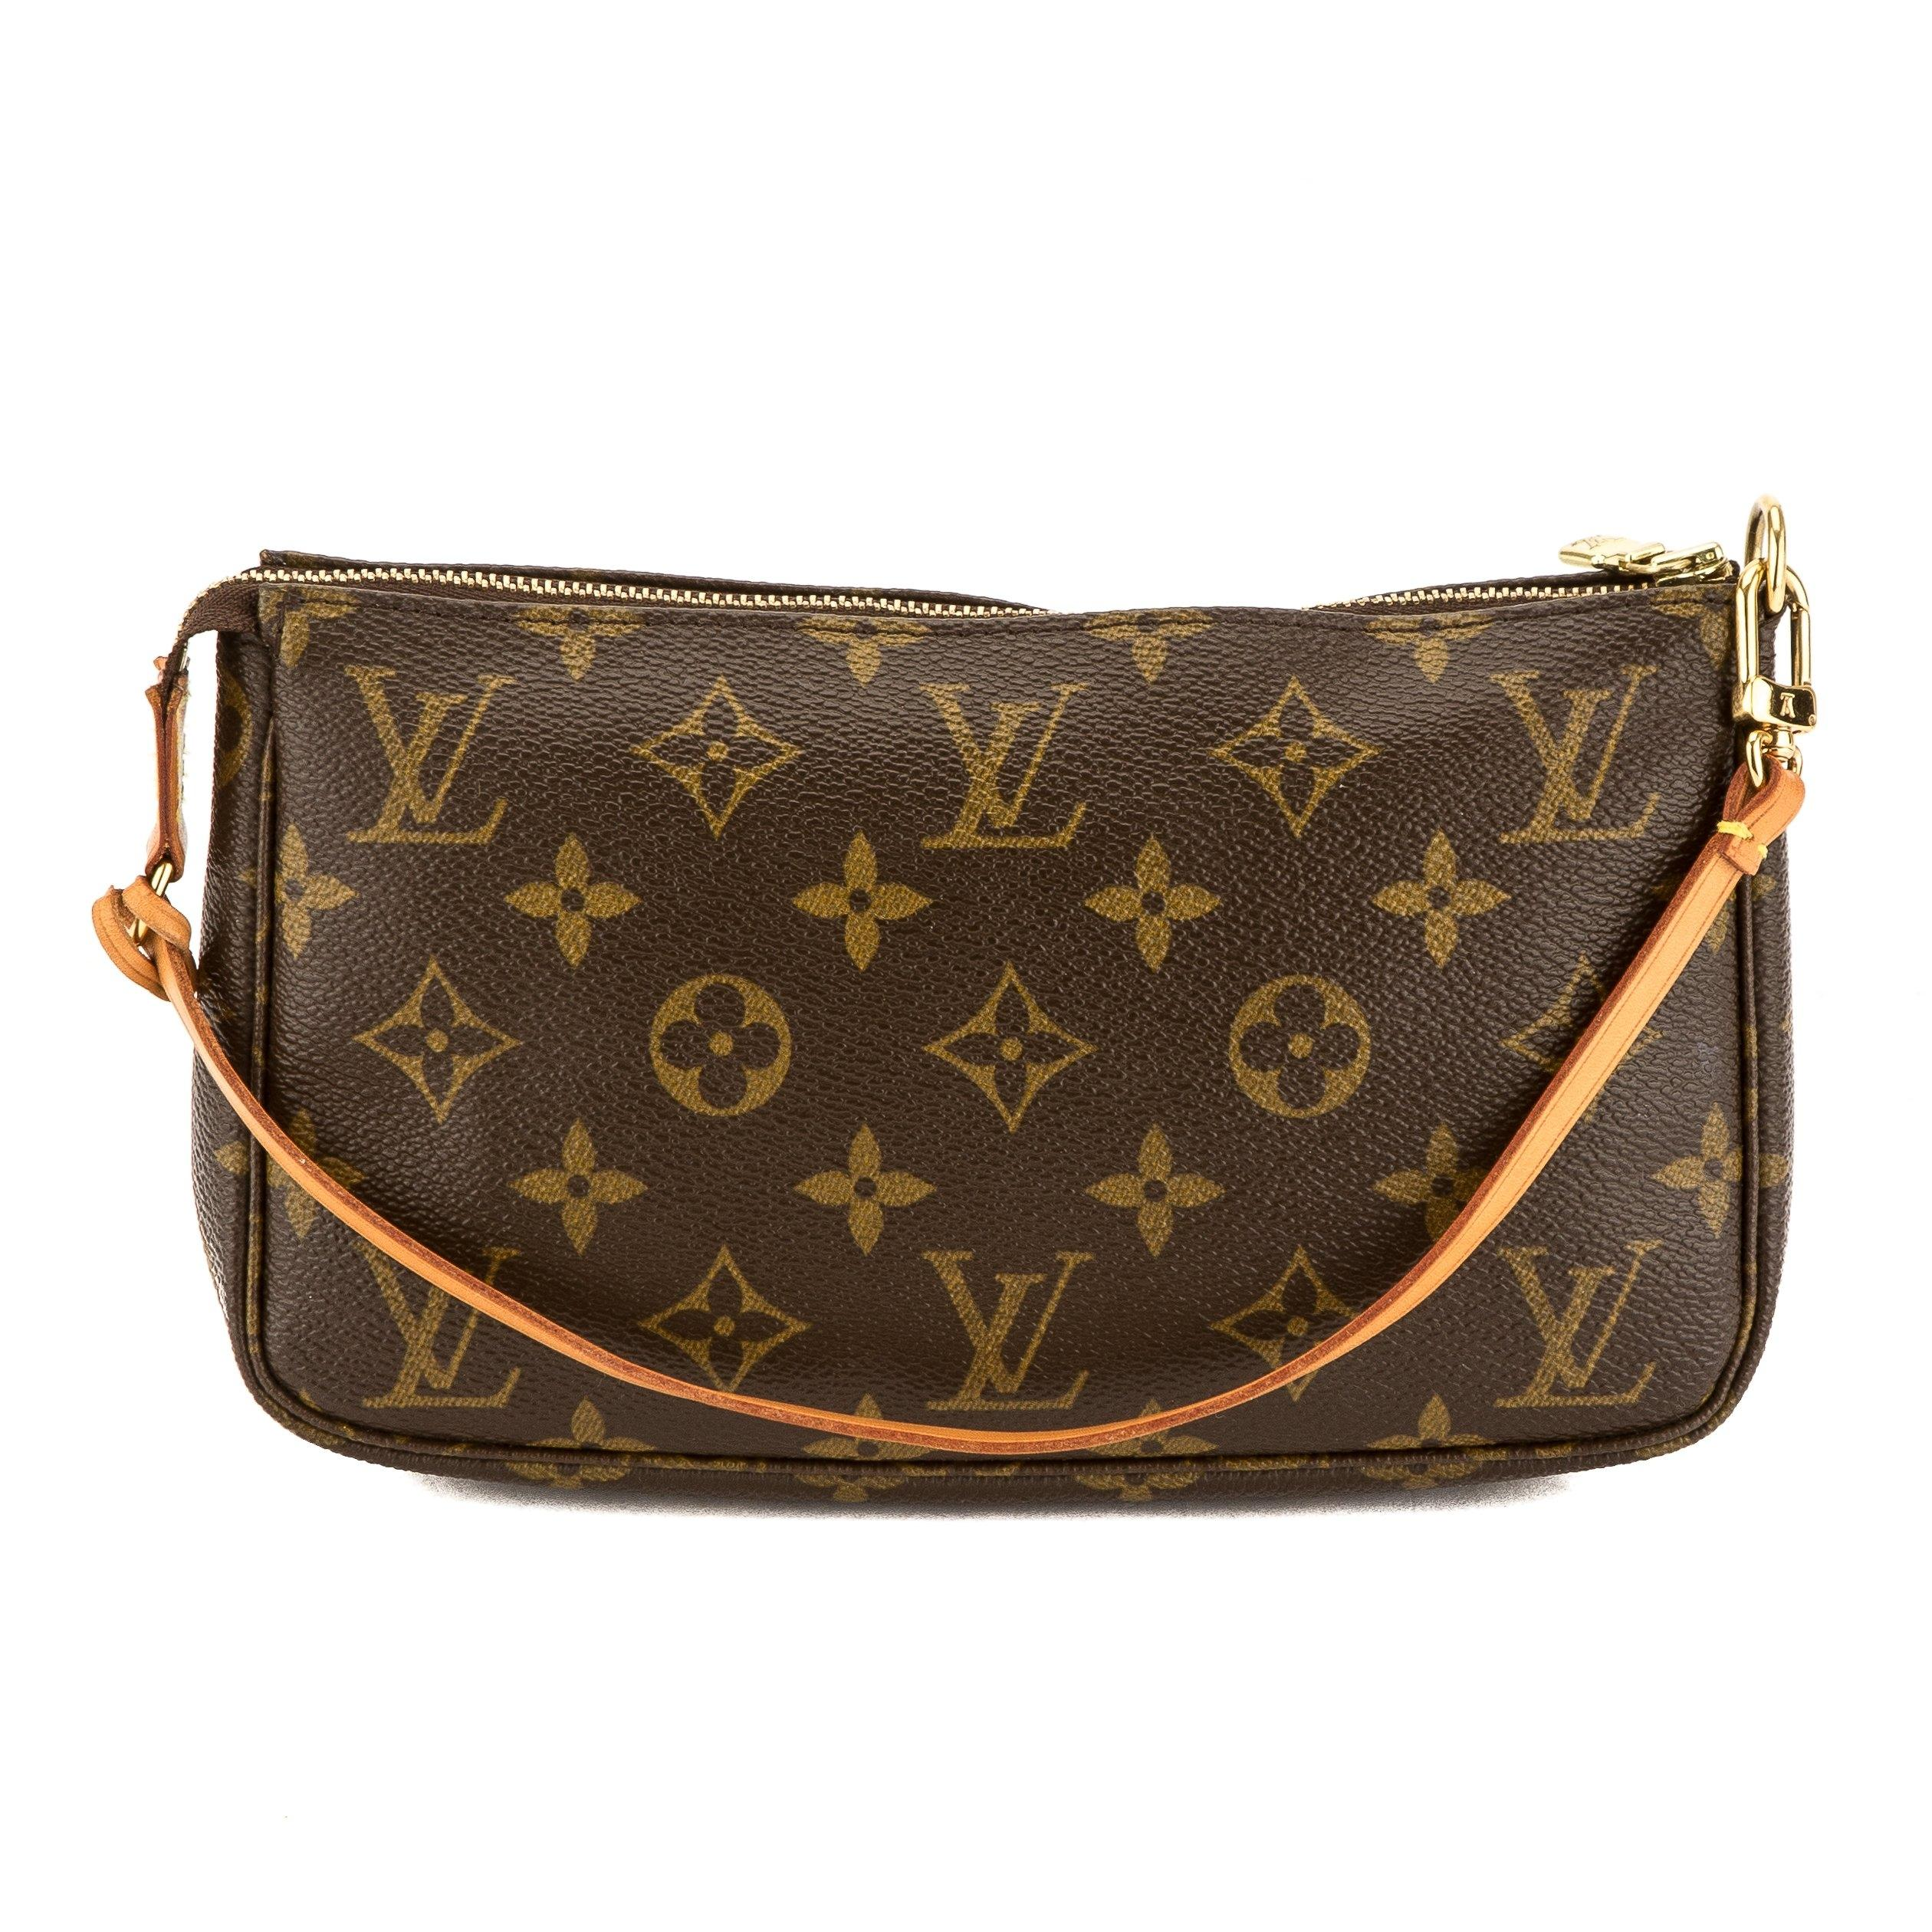 Pre-owned - Pochette Monogramme leather clutch bag Louis Vuitton fbrFX